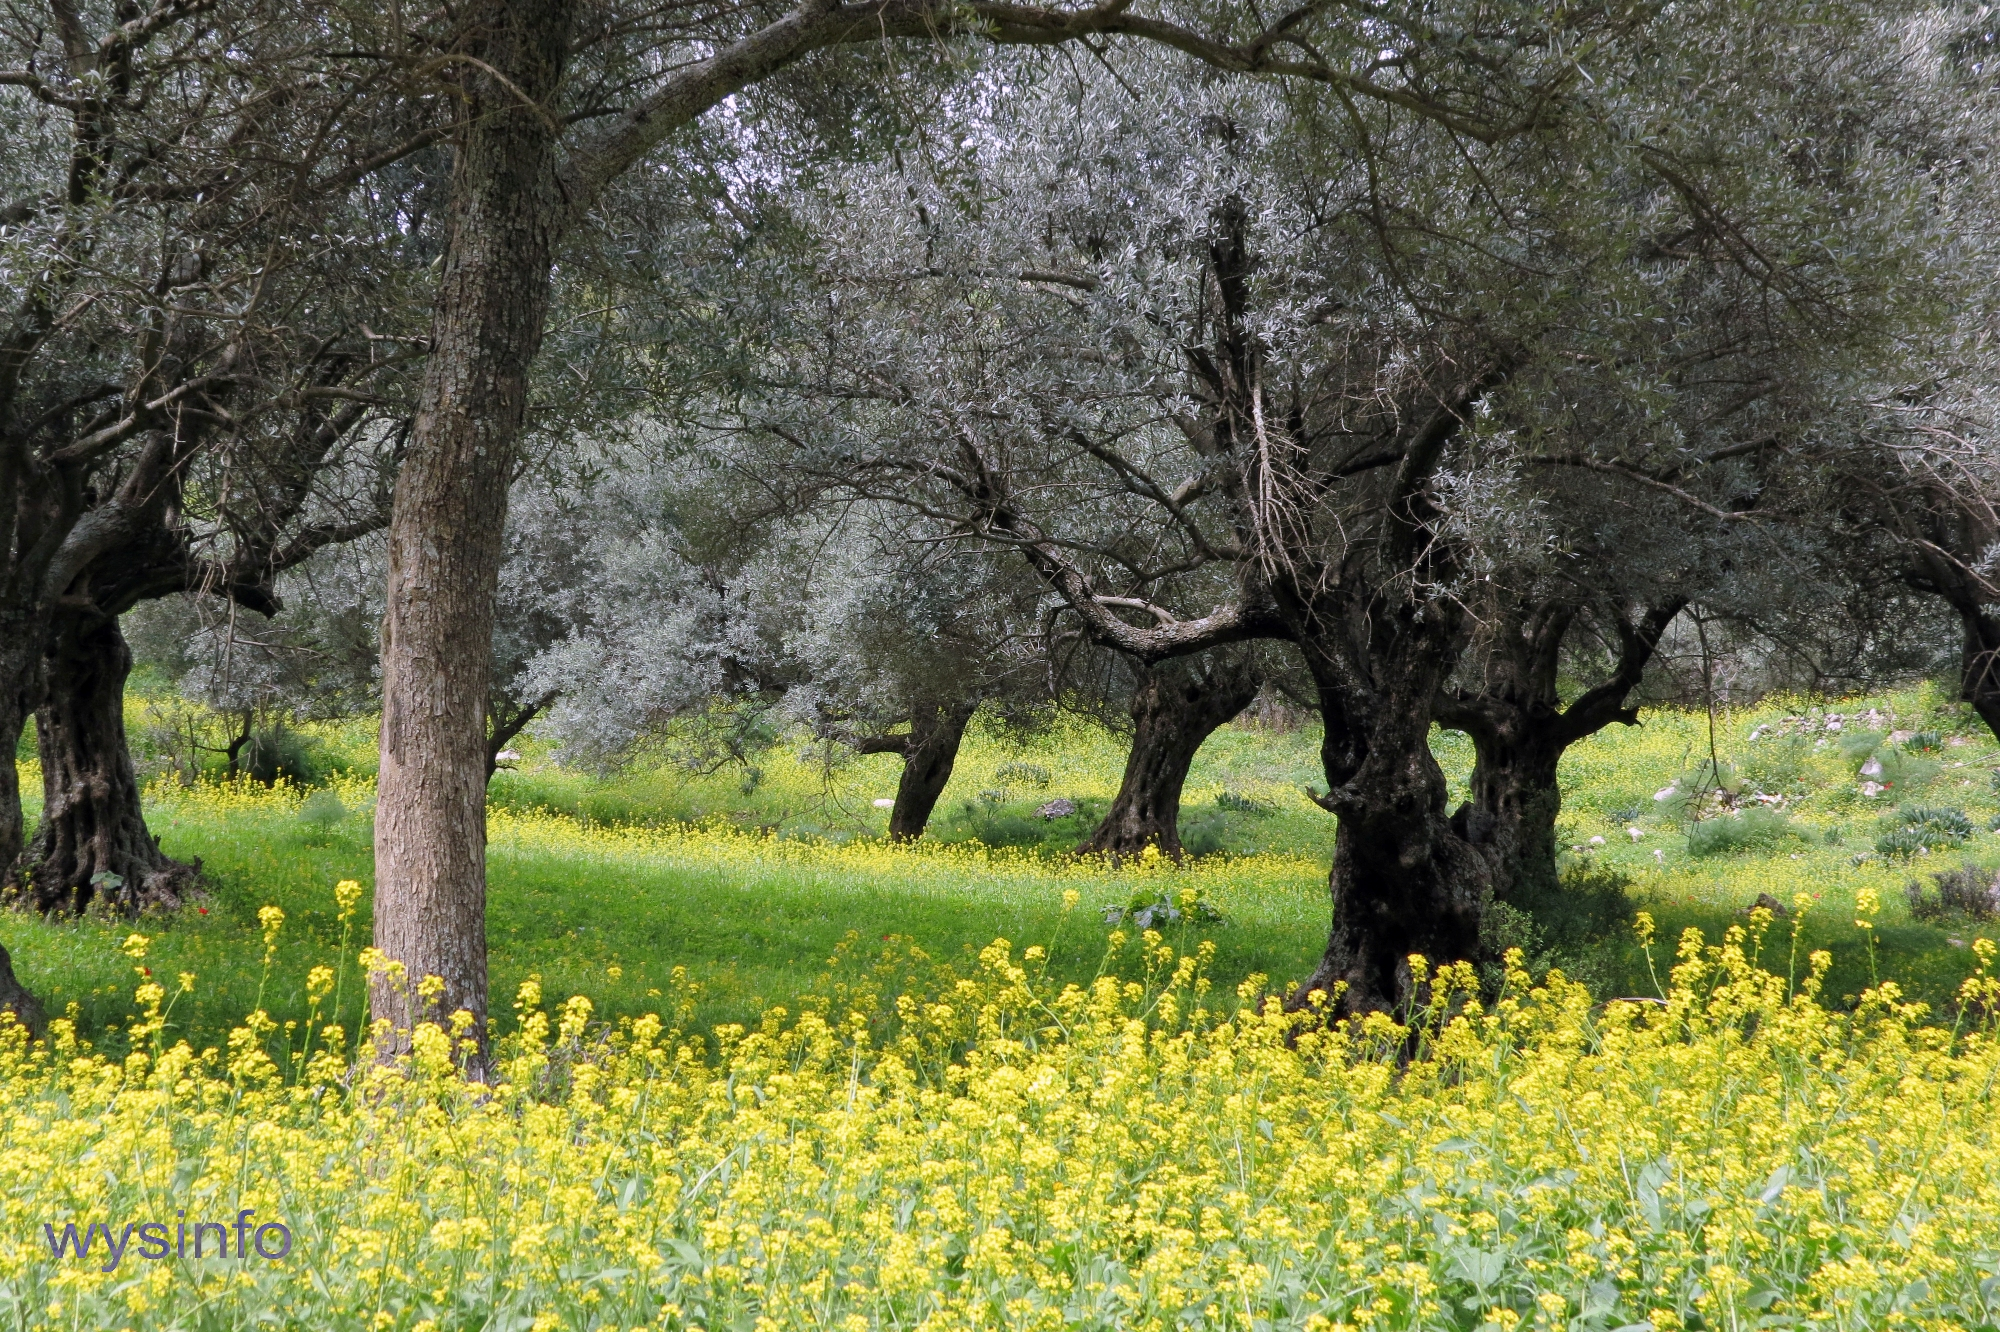 Olive trees in Rosh-Pina